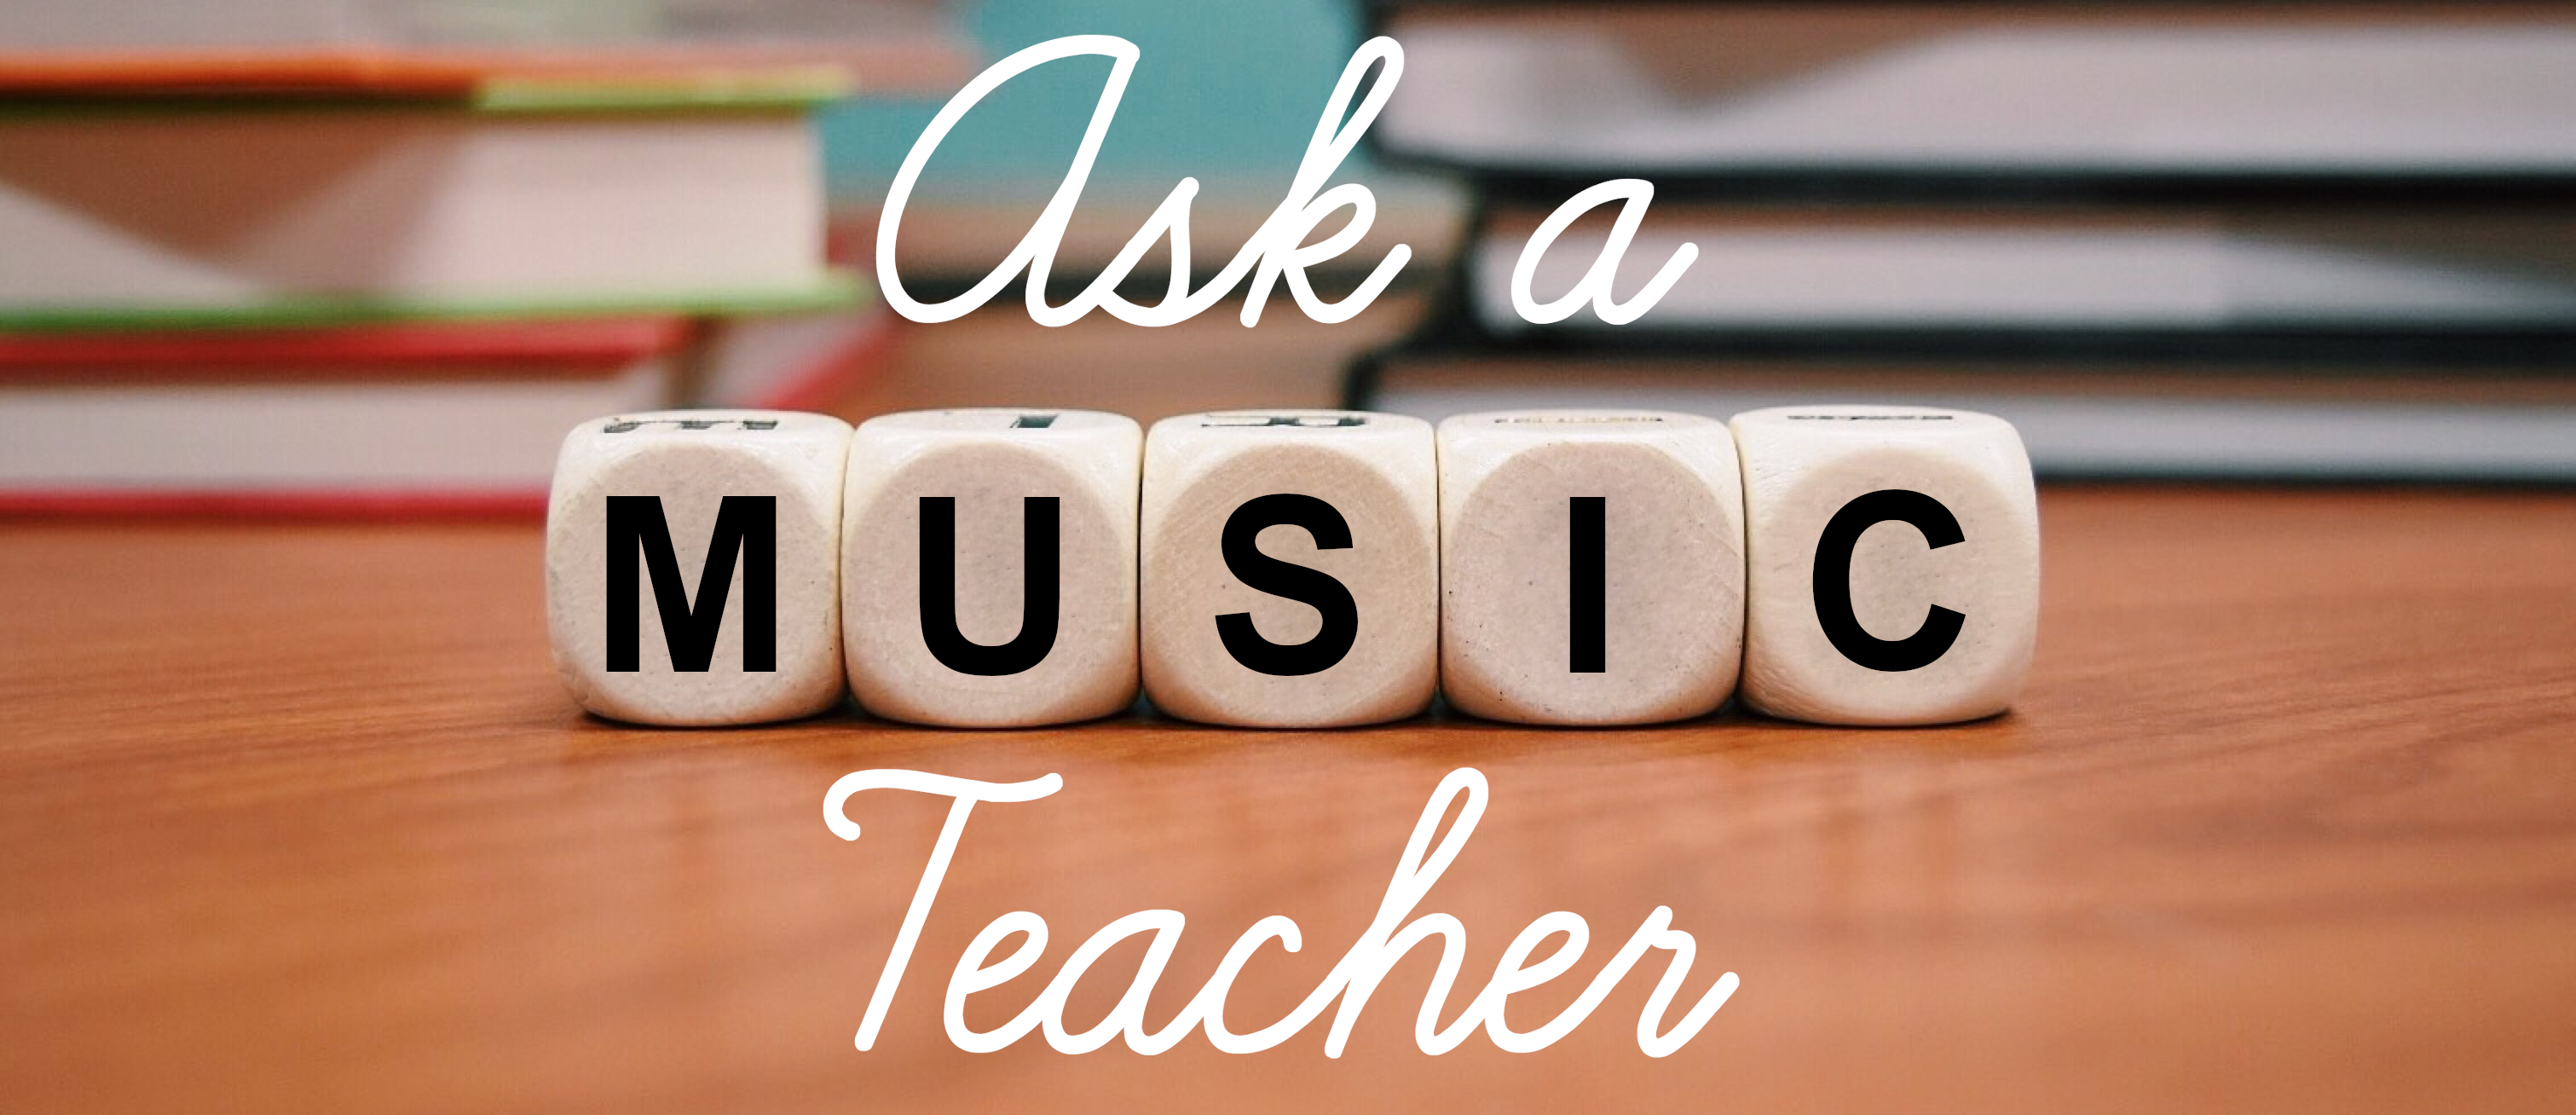 Ask a Music Teacher: What do I need to start music lessons?